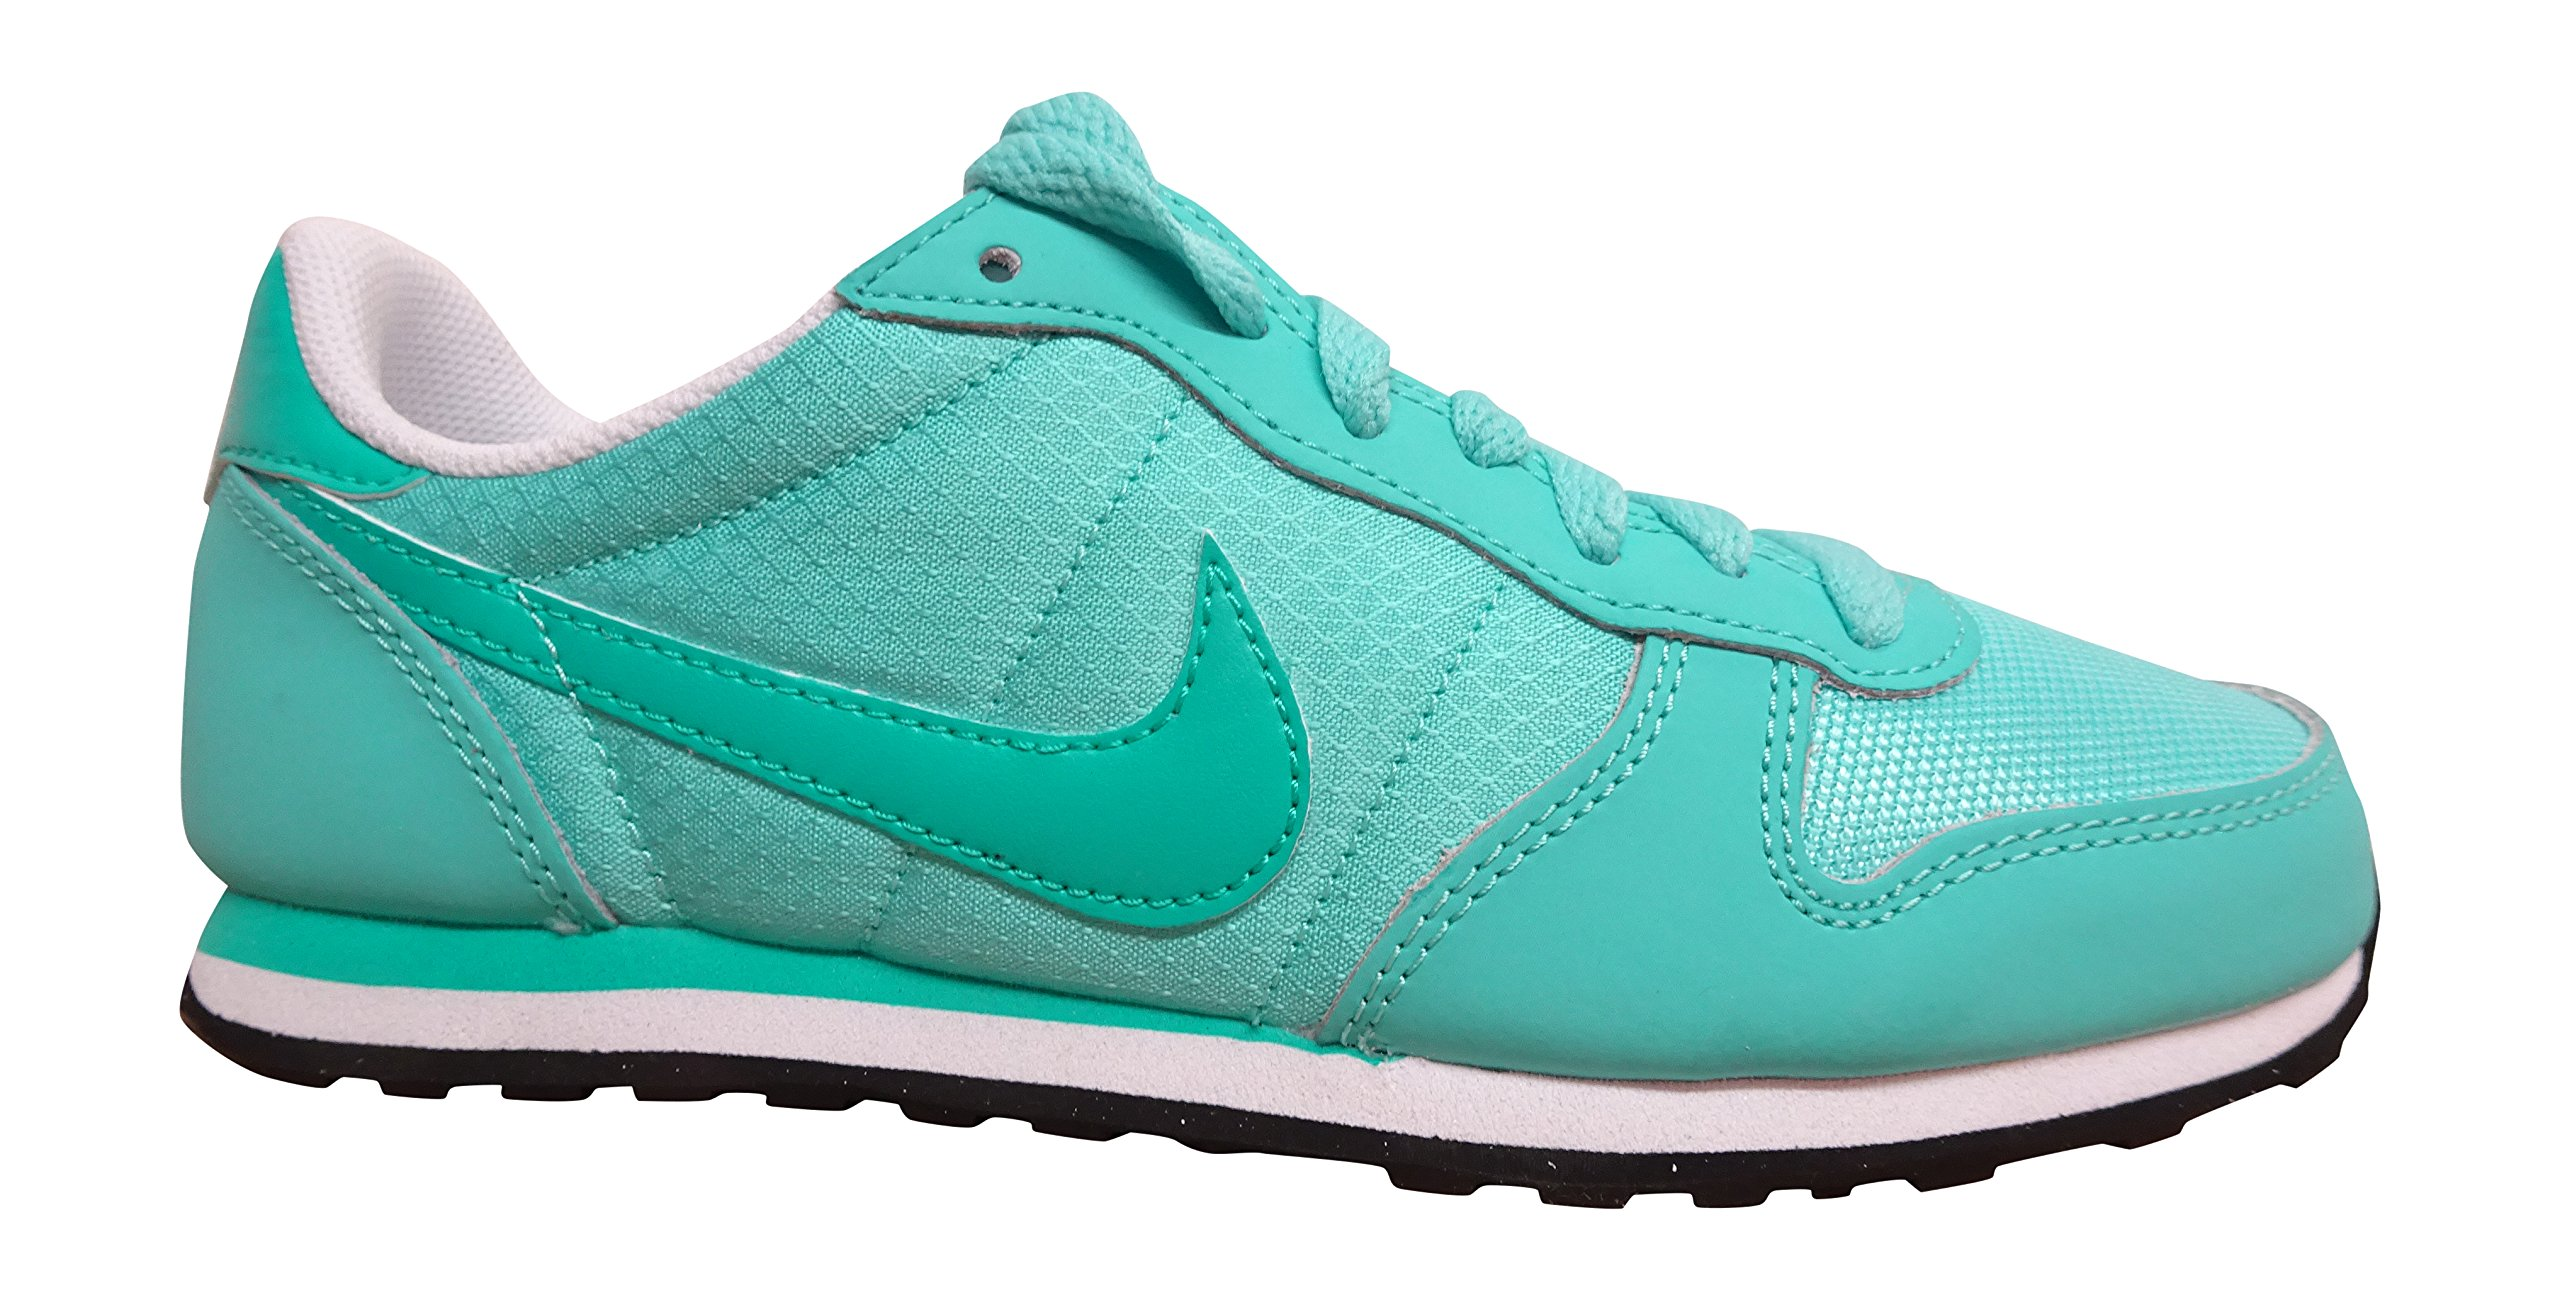 Galleon NIKE Womens Genicco Trainers 644451 Sneakers Shoes